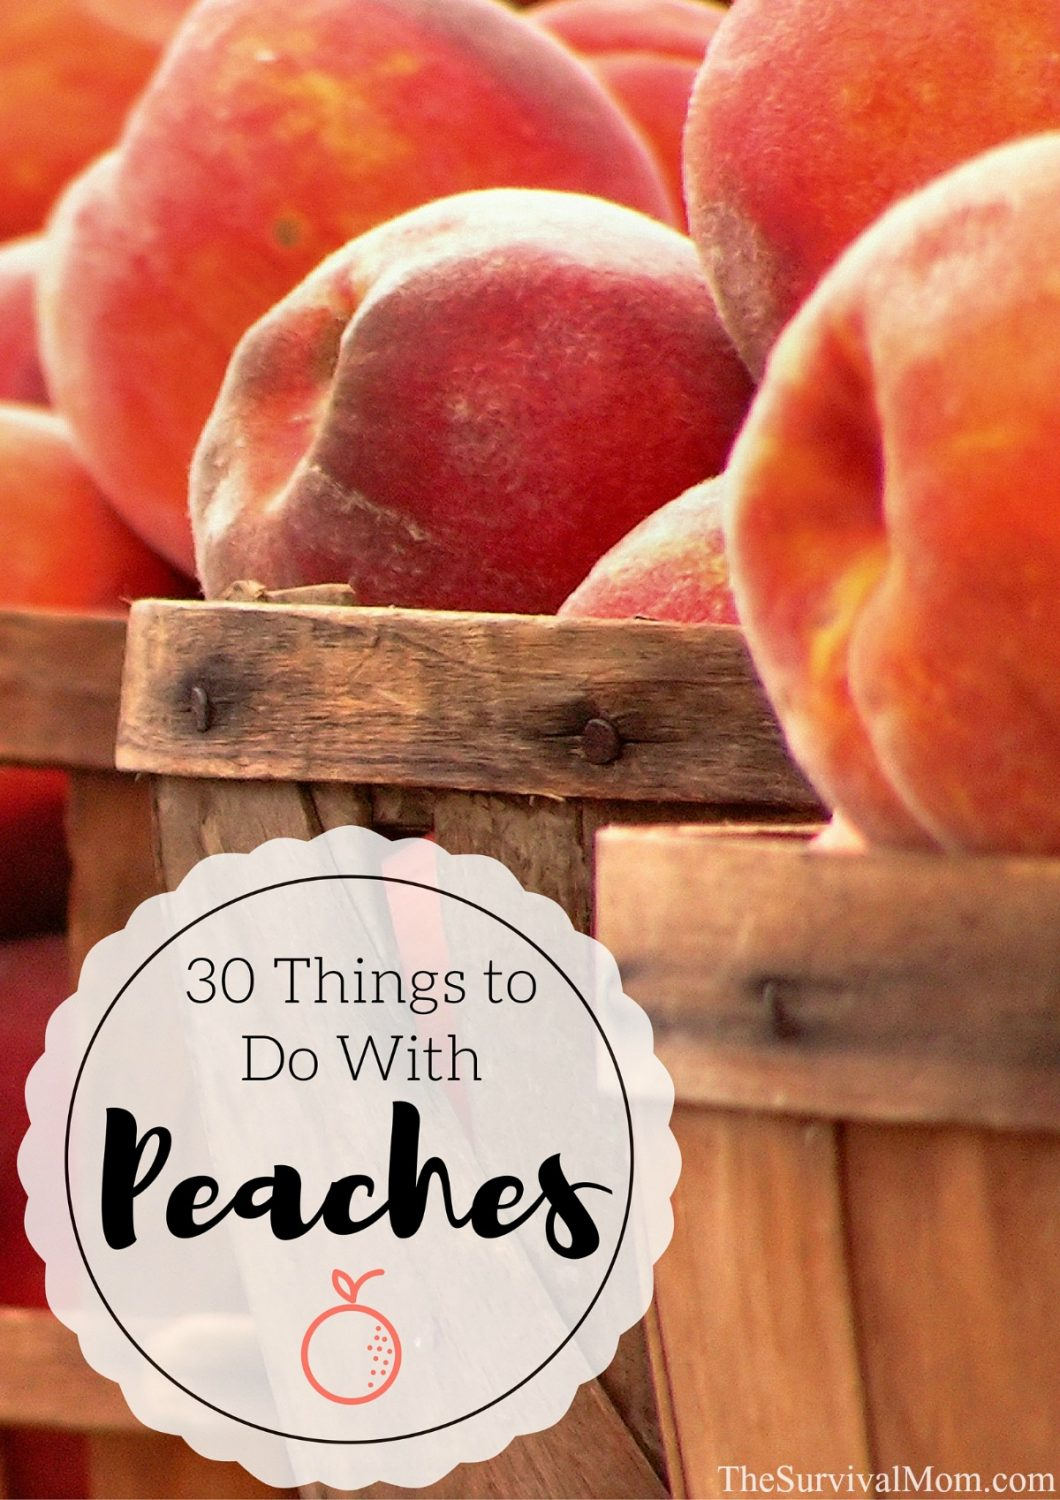 Things to Do With Peaches